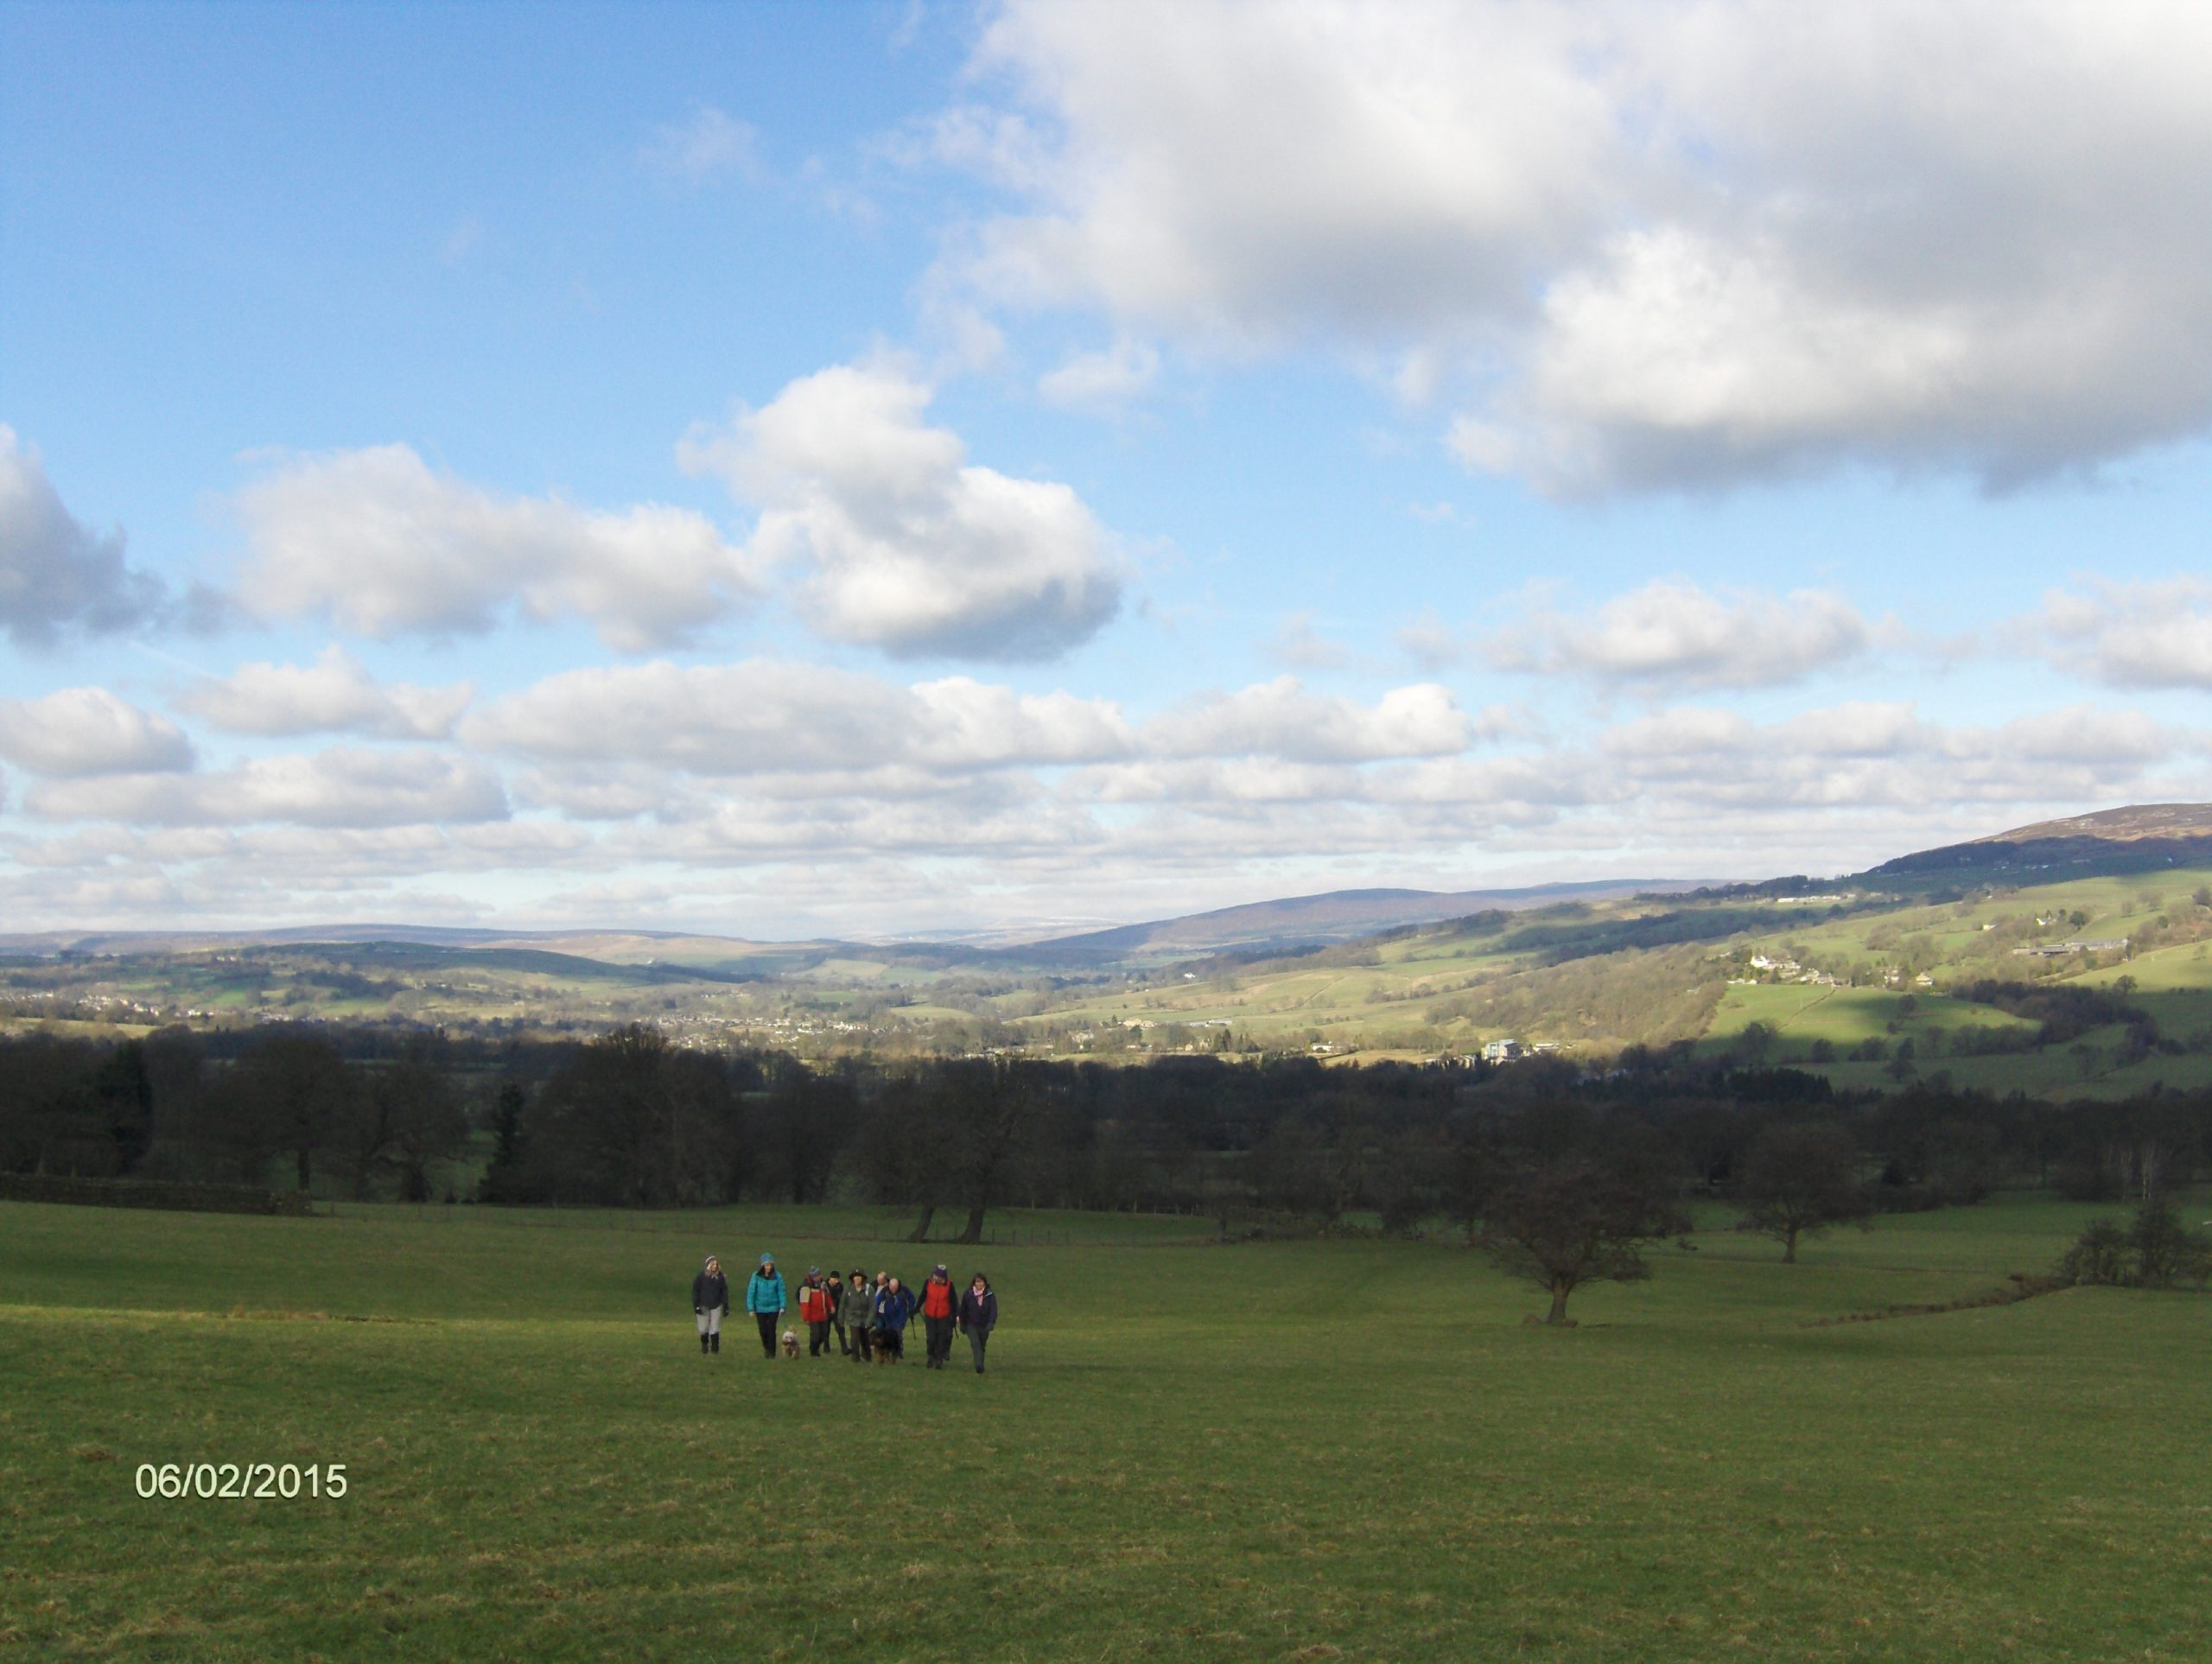 Crossing fields back to Ilkley